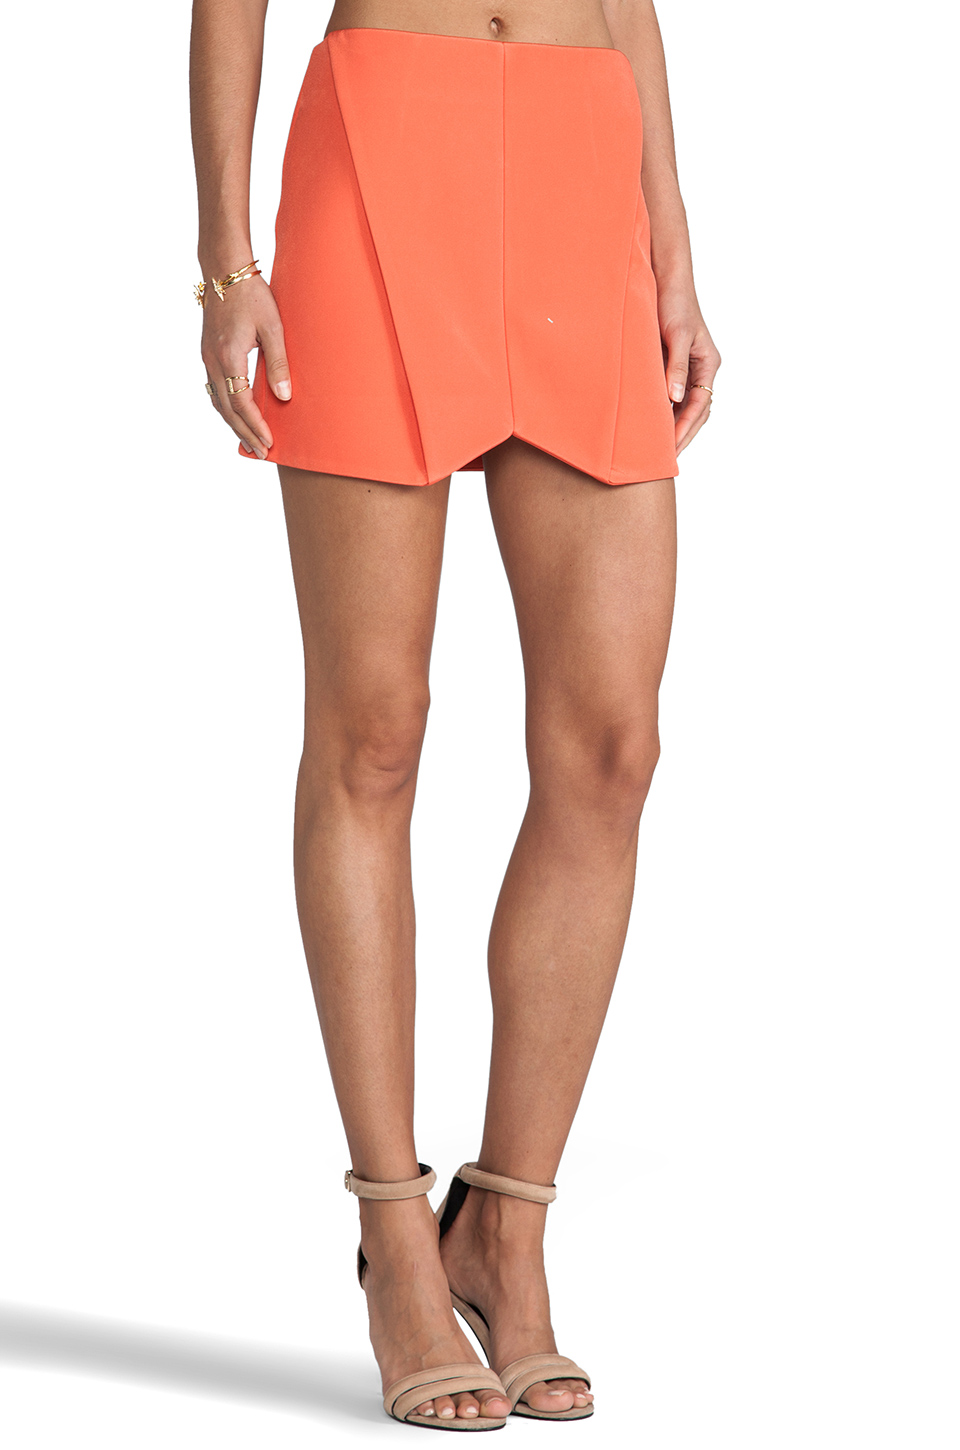 Cameo Everybody Talks Skirt in Tangerine from REVOLVEclothing.com